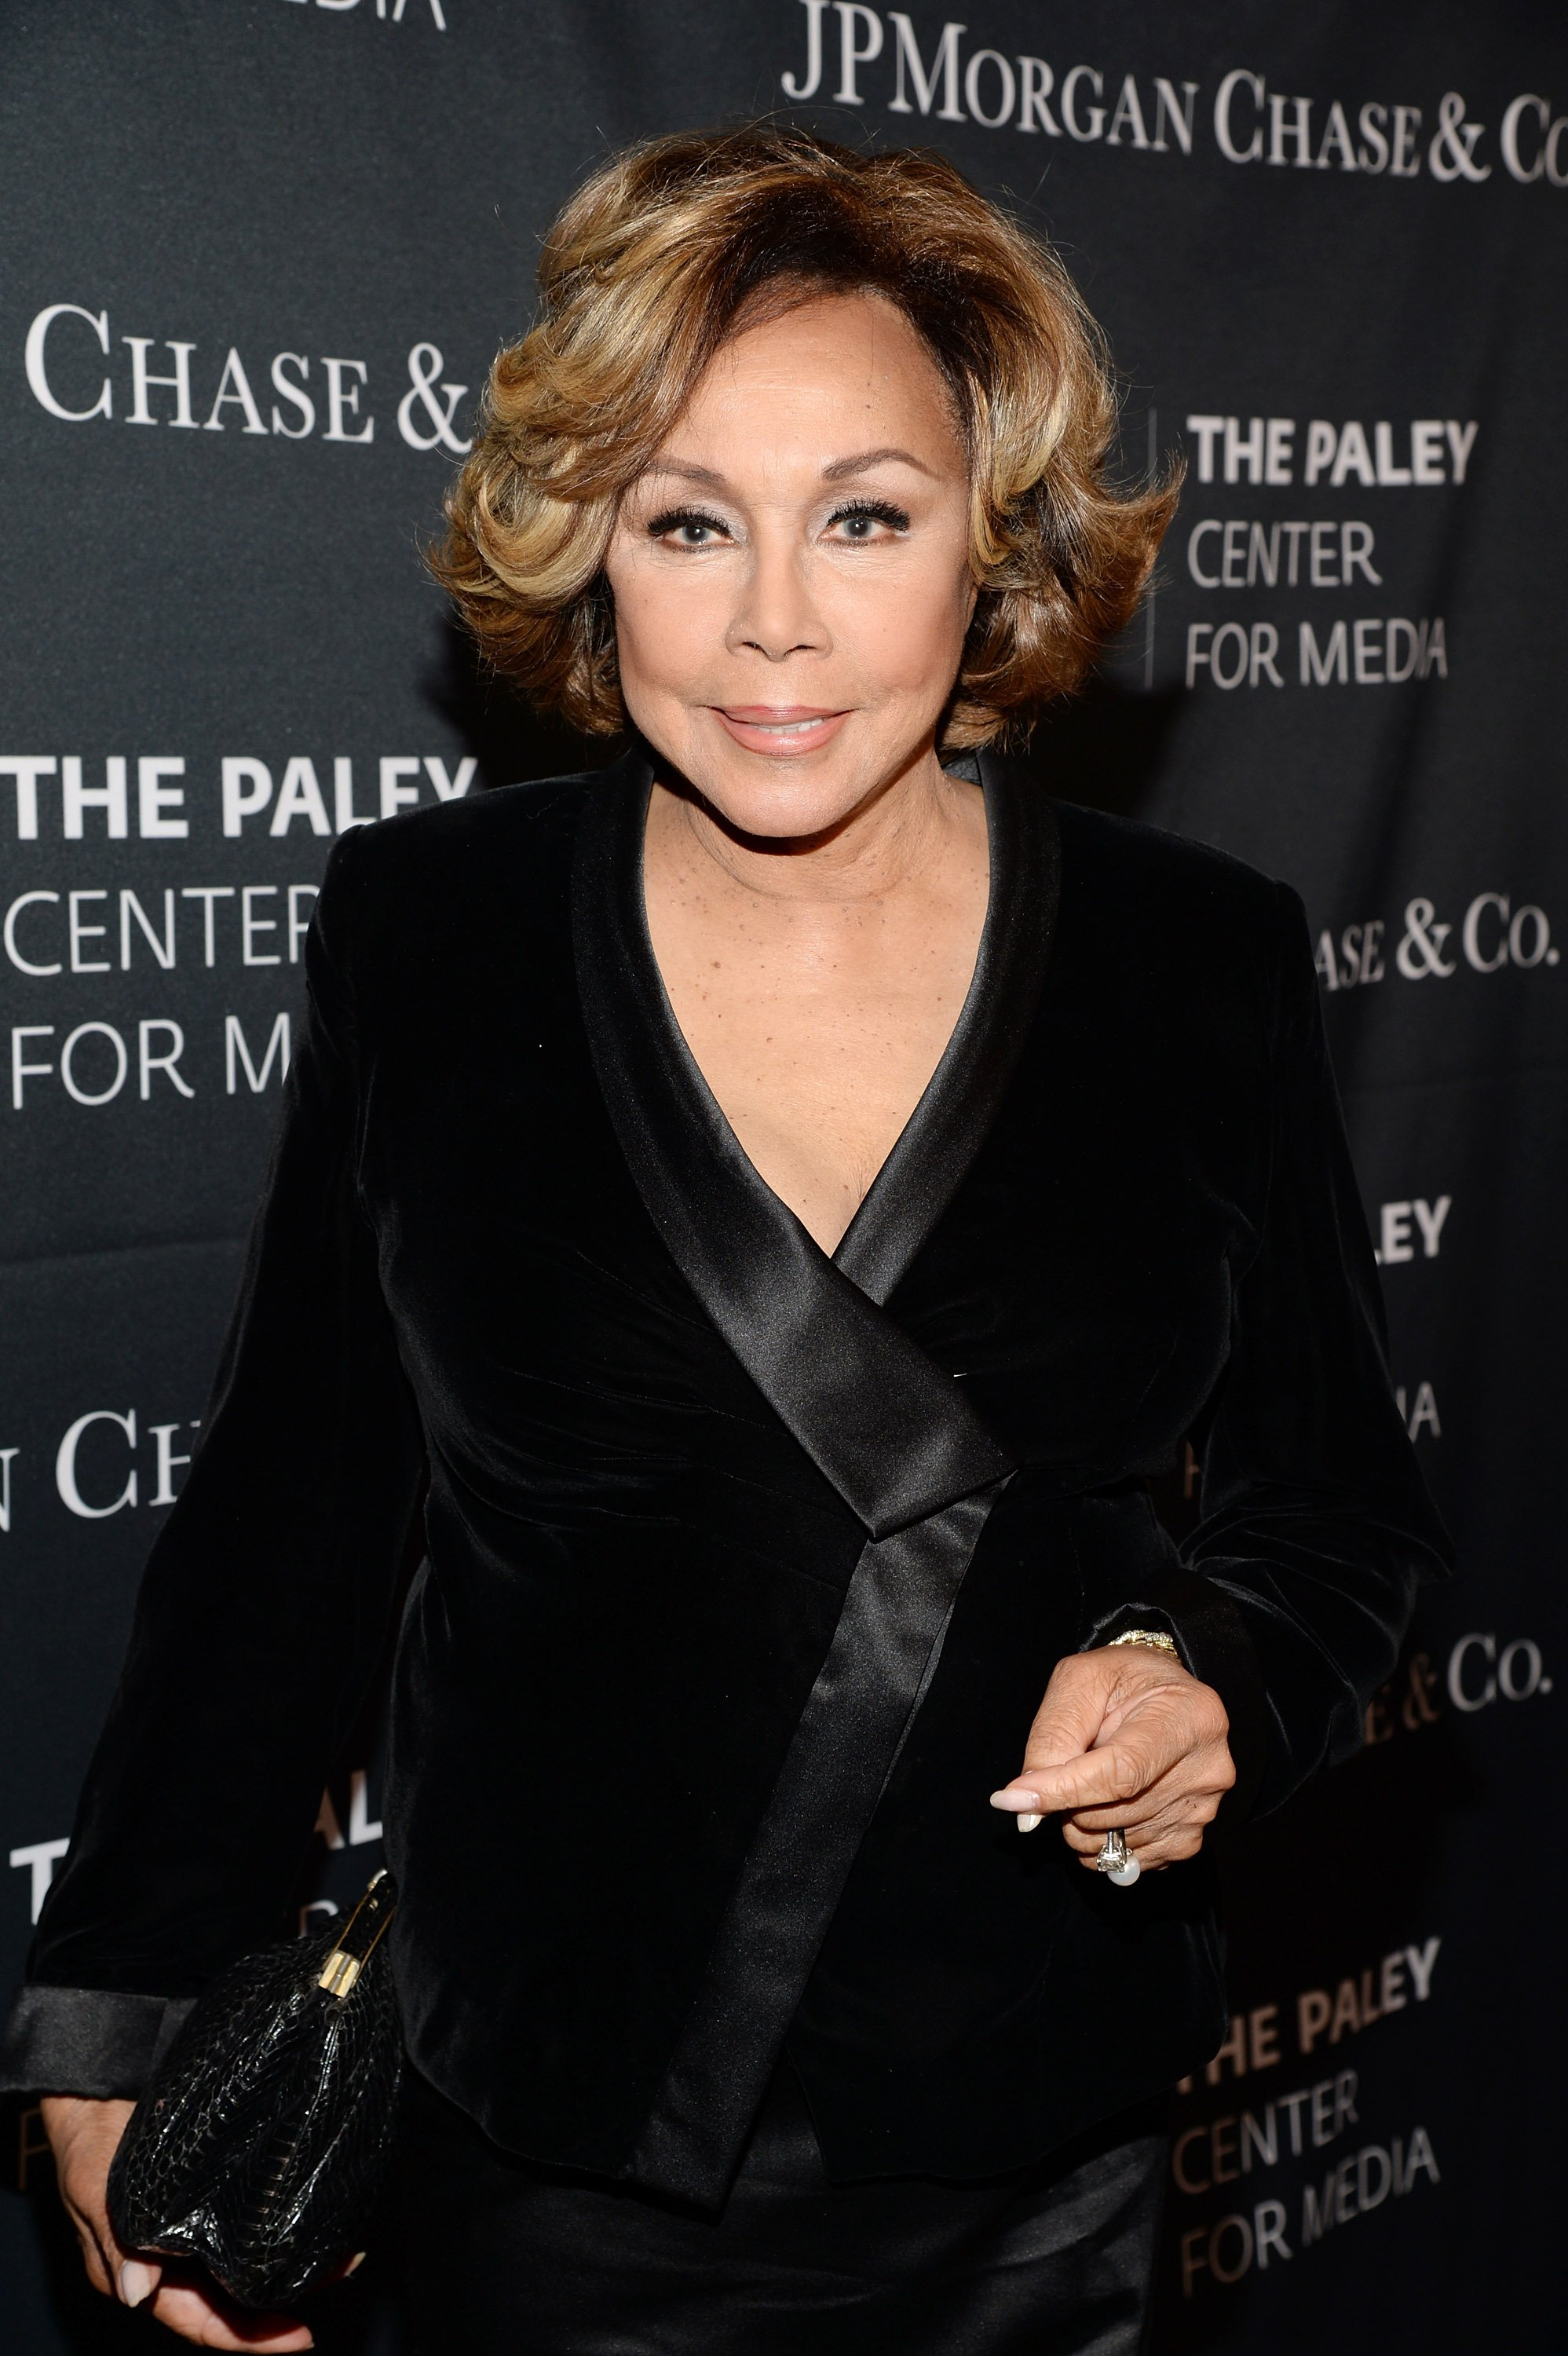 Diahann Carroll attends the Paley Center For Media's Hollywood Tribute To African-American Achievements in Television, Presented by JPMorgan & Co. on October 26, 2015 | Photo: GettyImages